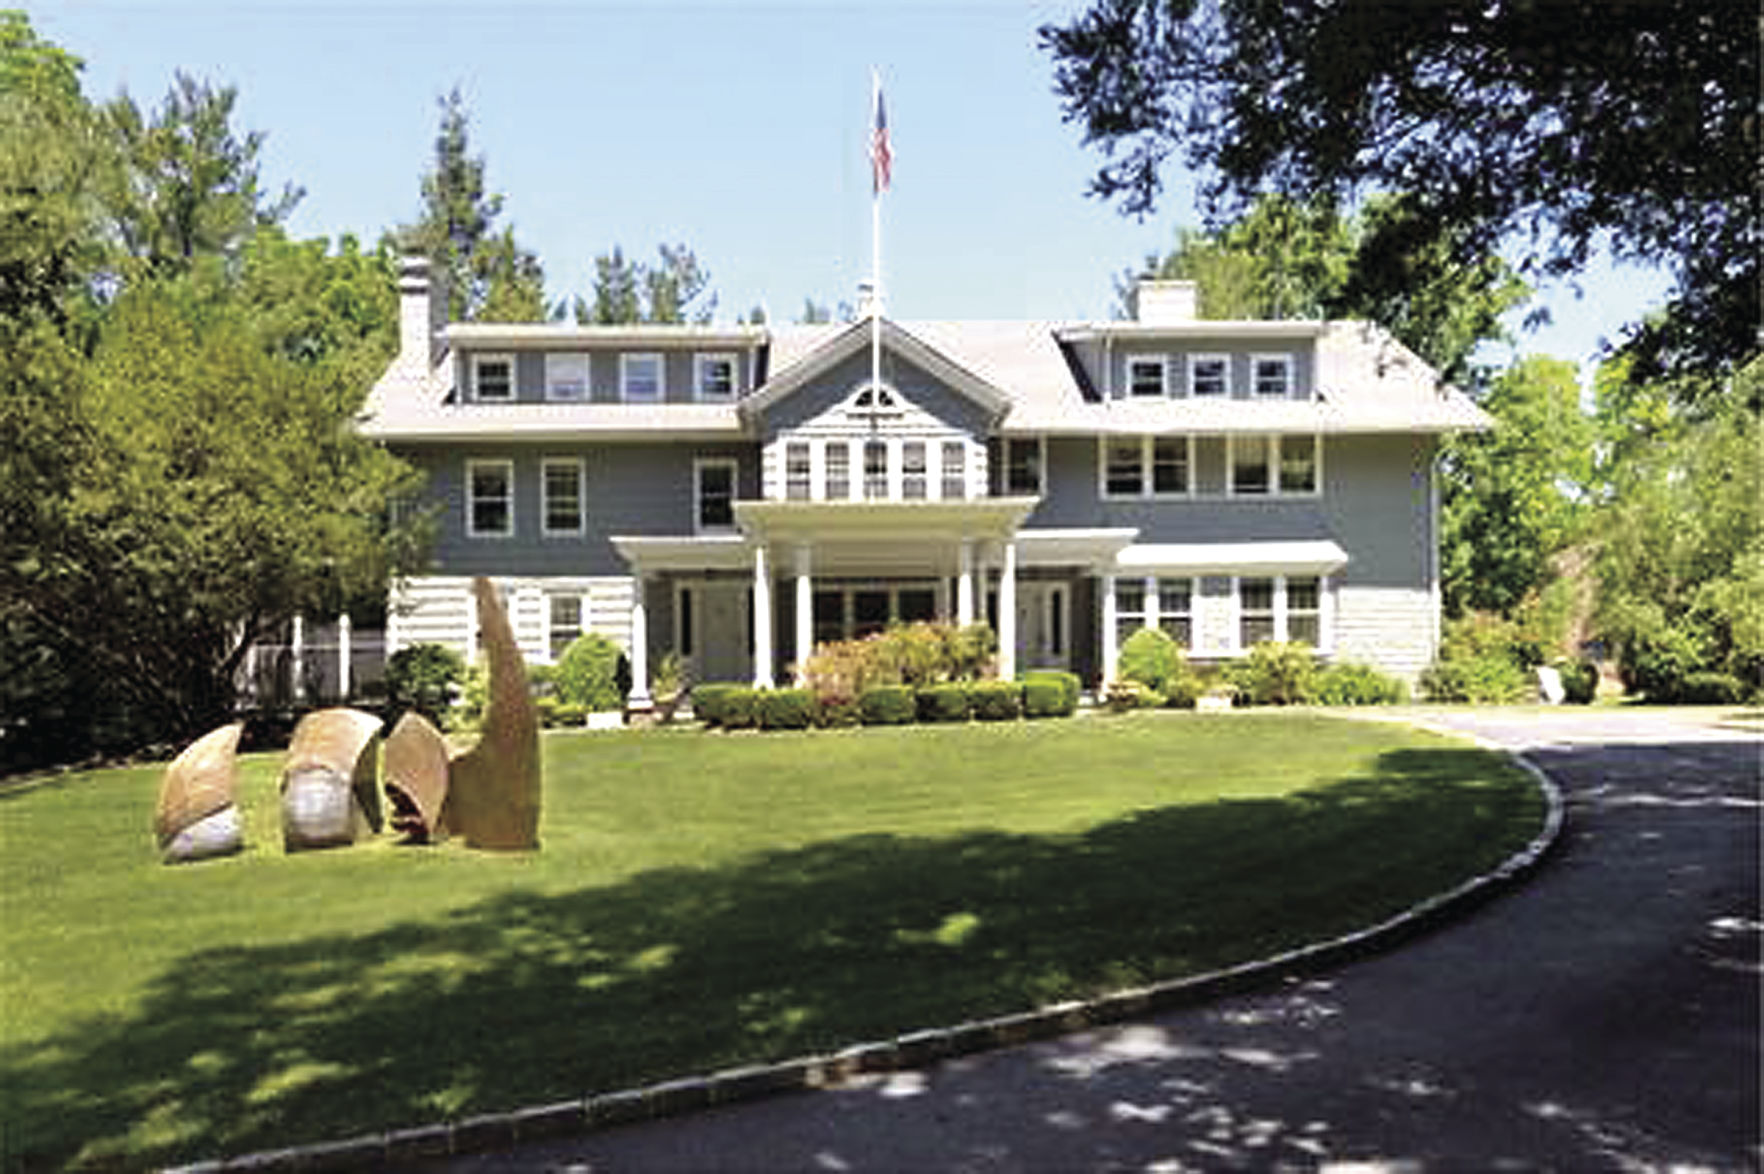 Historic Hewlett Homestead for sale - The Island Now